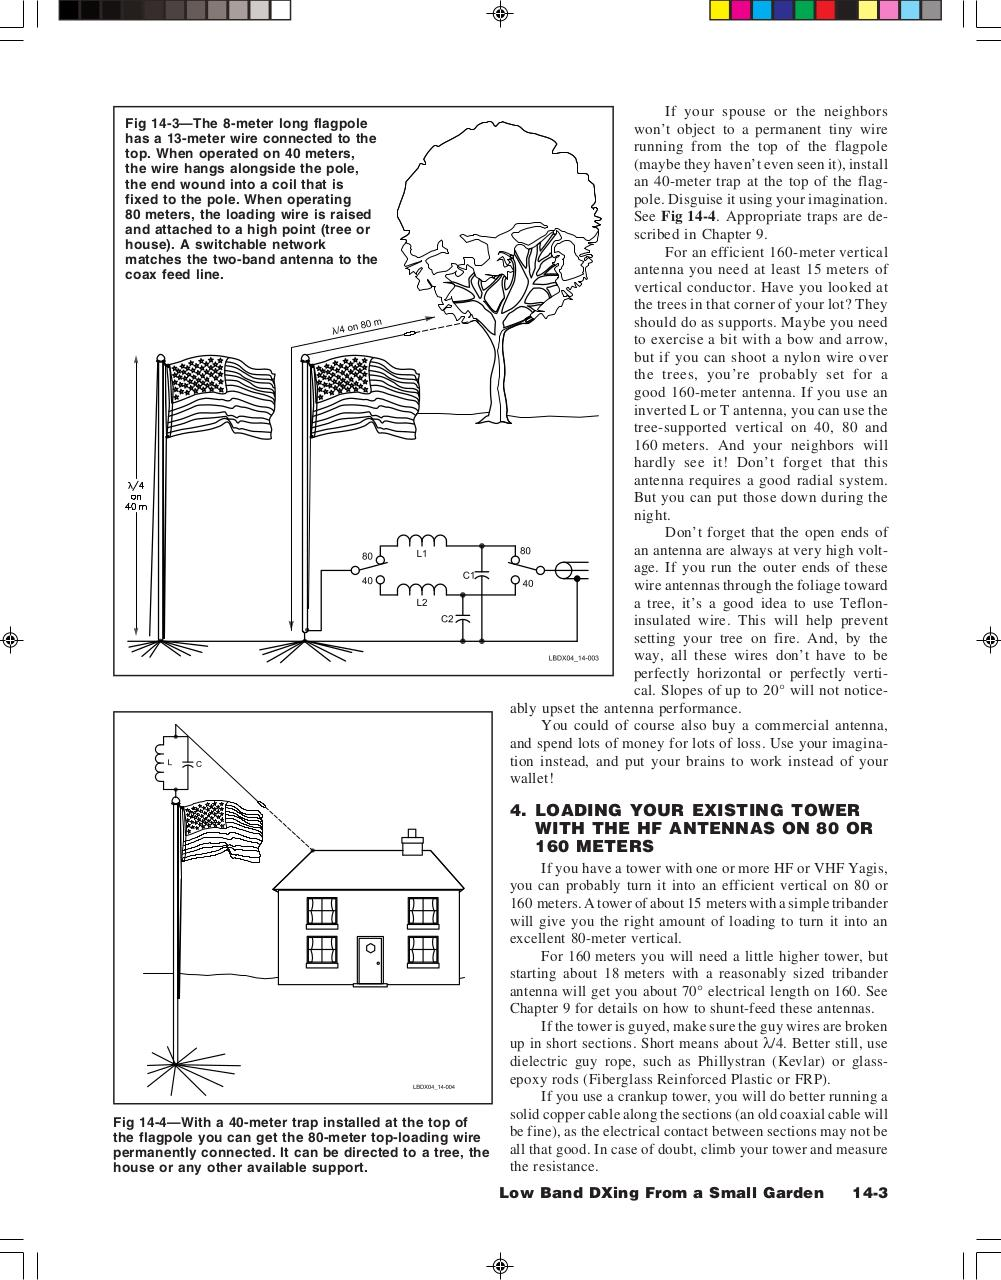 Chapter 14—Low Band DXing From a Small Garden par ARRL - 14 pdf